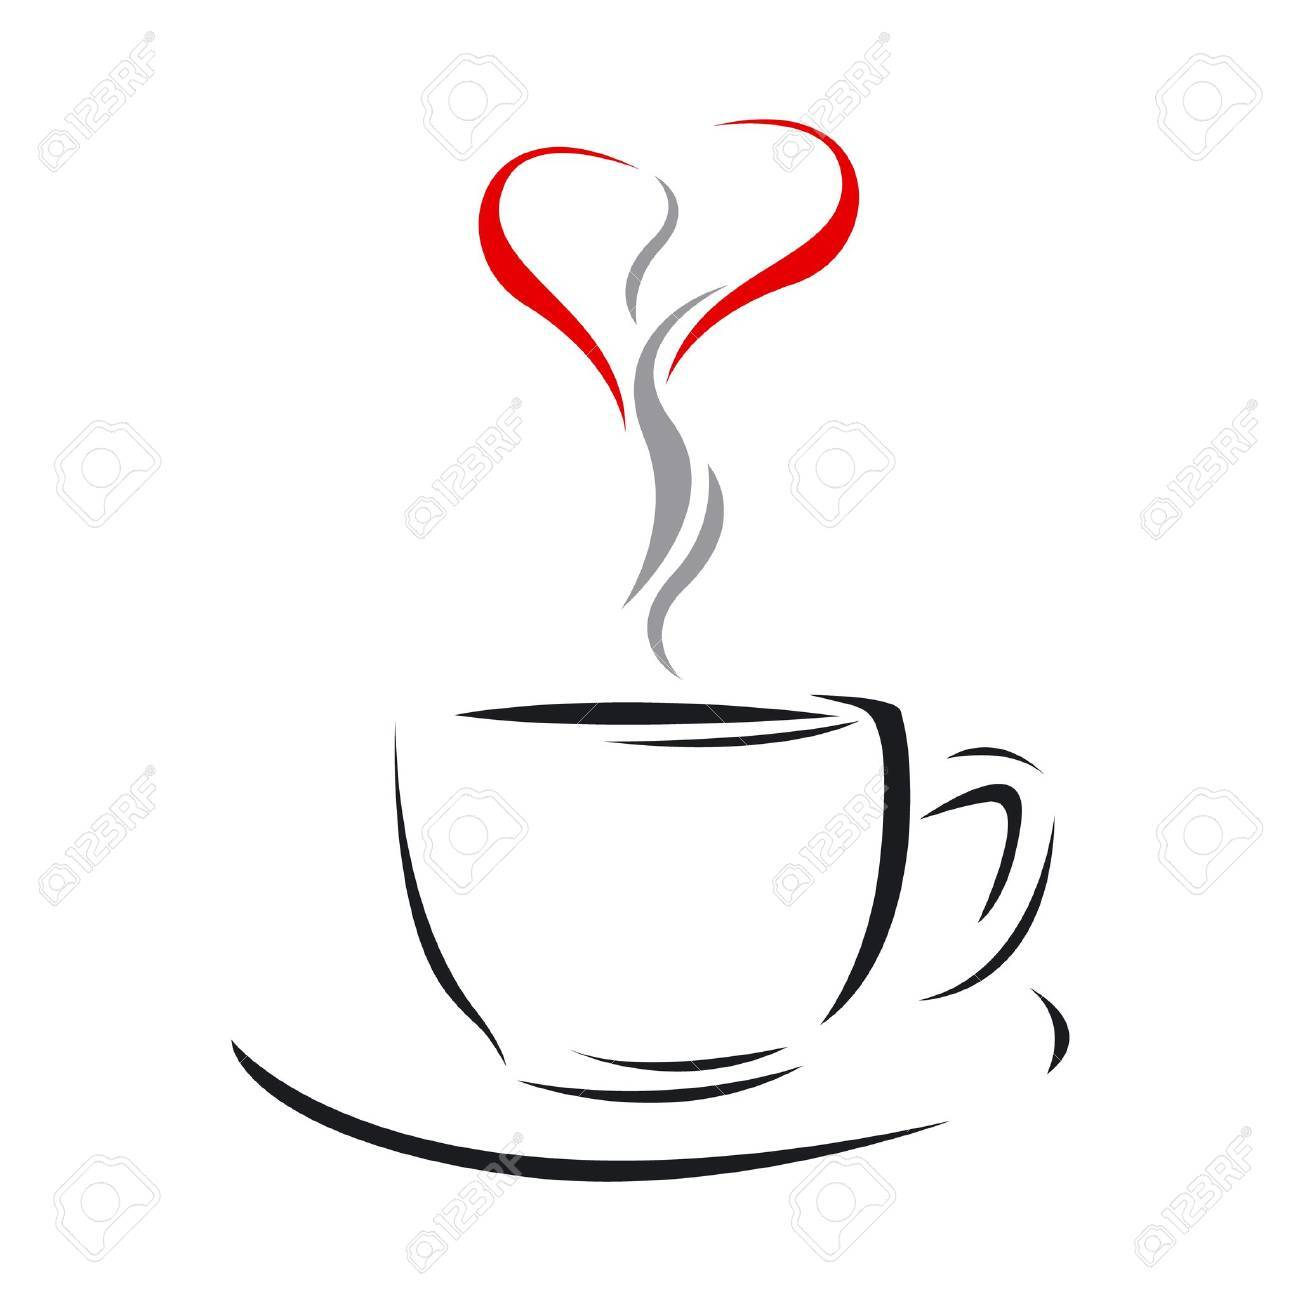 Cup of love Stock Vector - 12167501